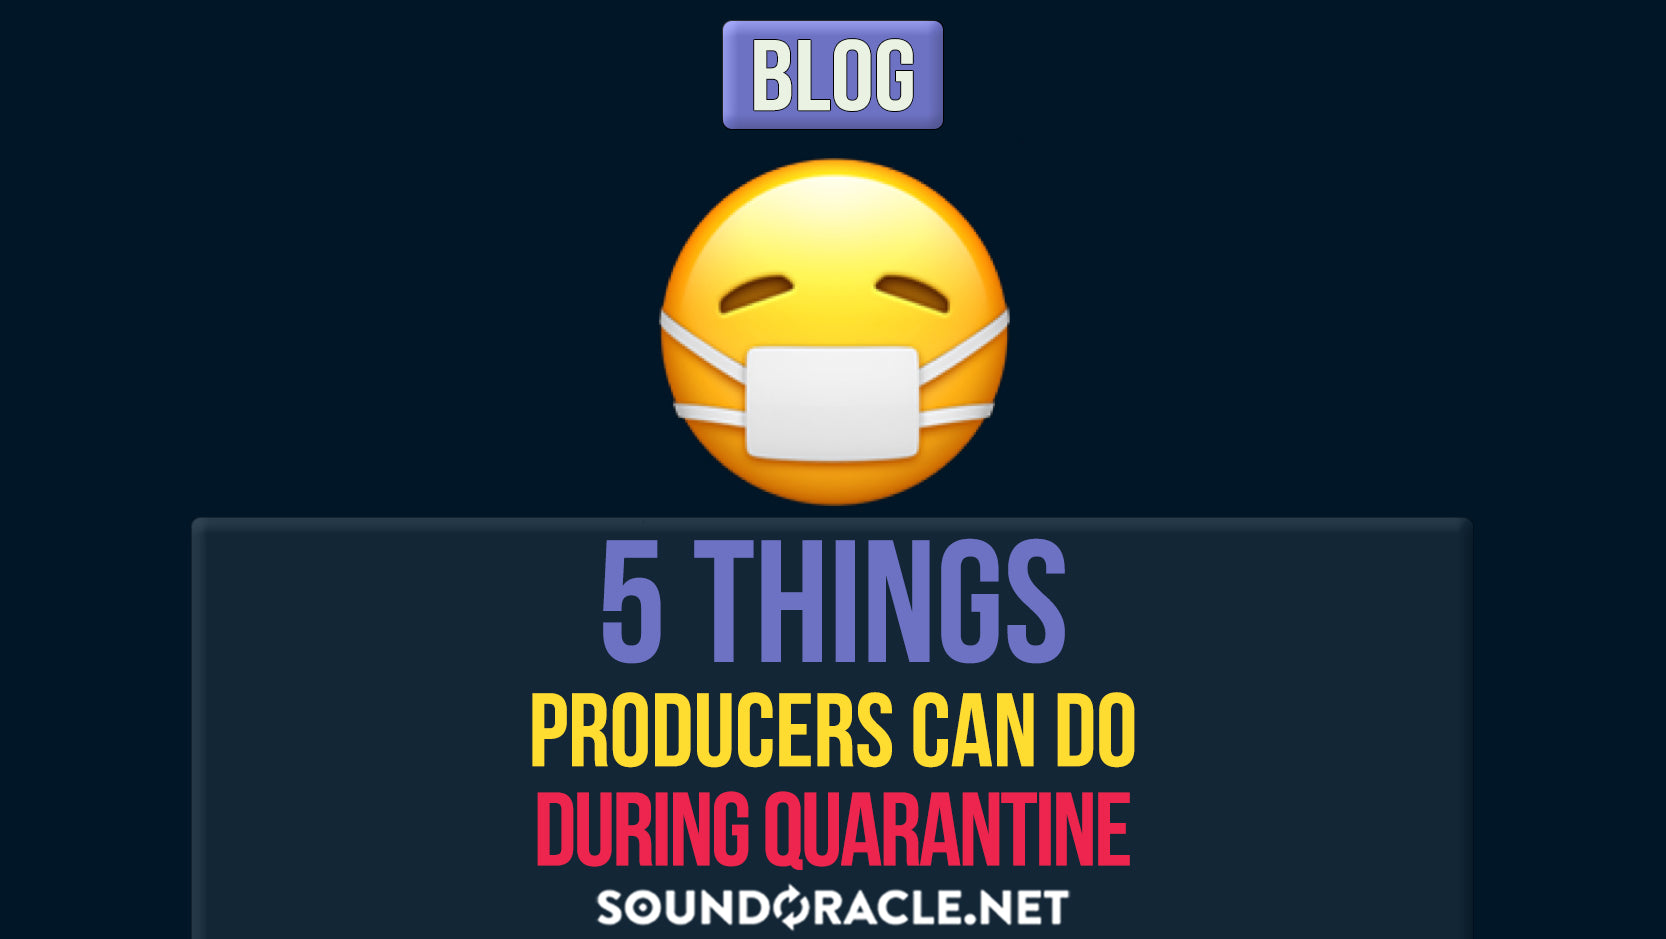 5 Things Producers Can Do During Quarantine